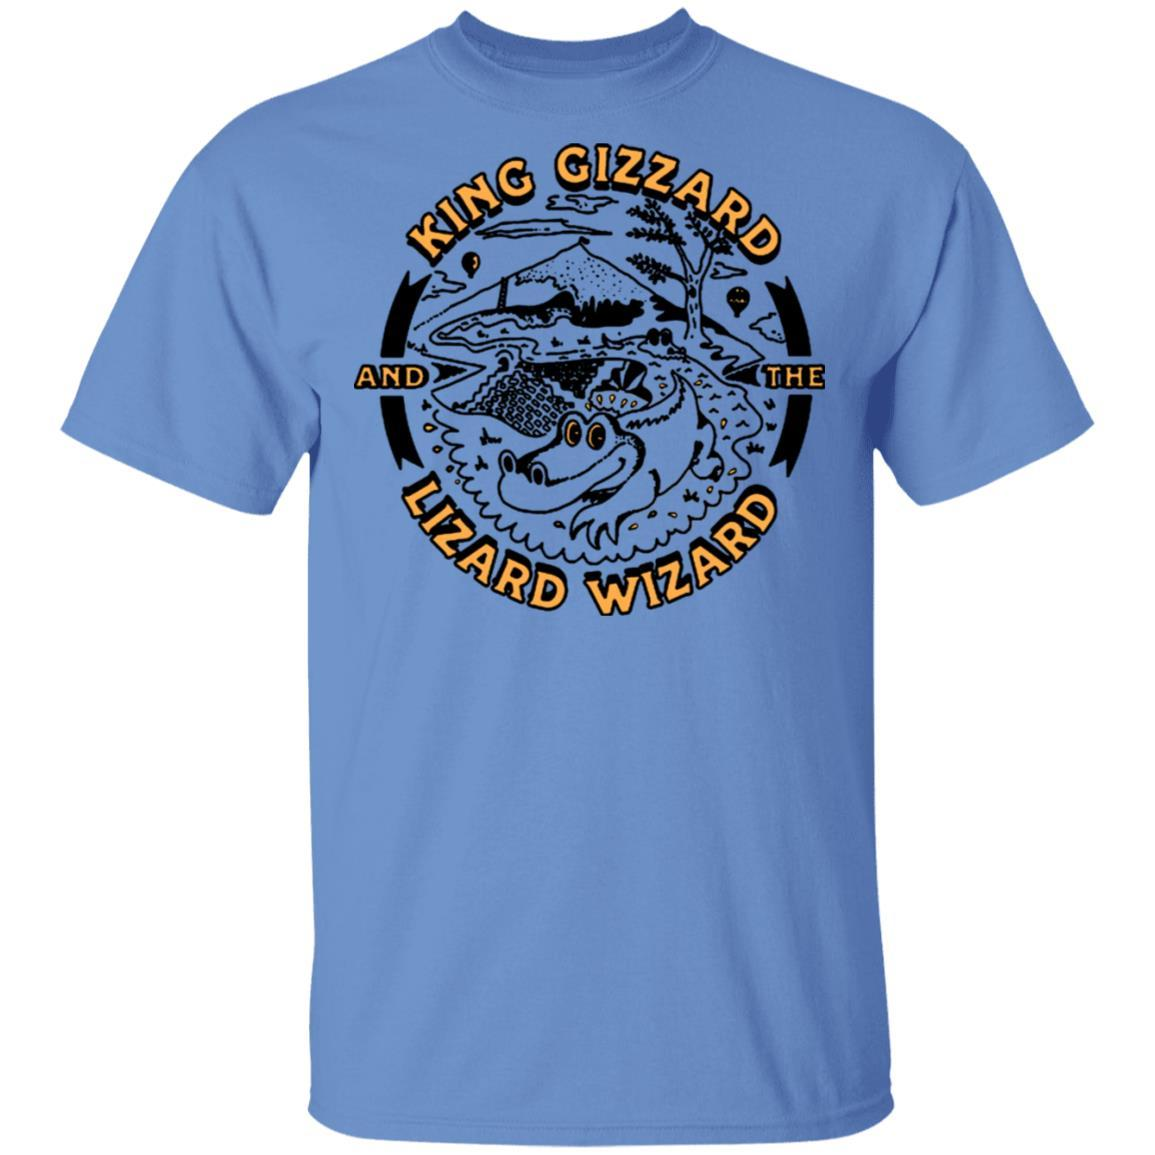 King Gizzard And The Lizard Wizard Gators Vintage T-Shirts, Hoodies 1049-9955-88477983-48160 - Tee Ript